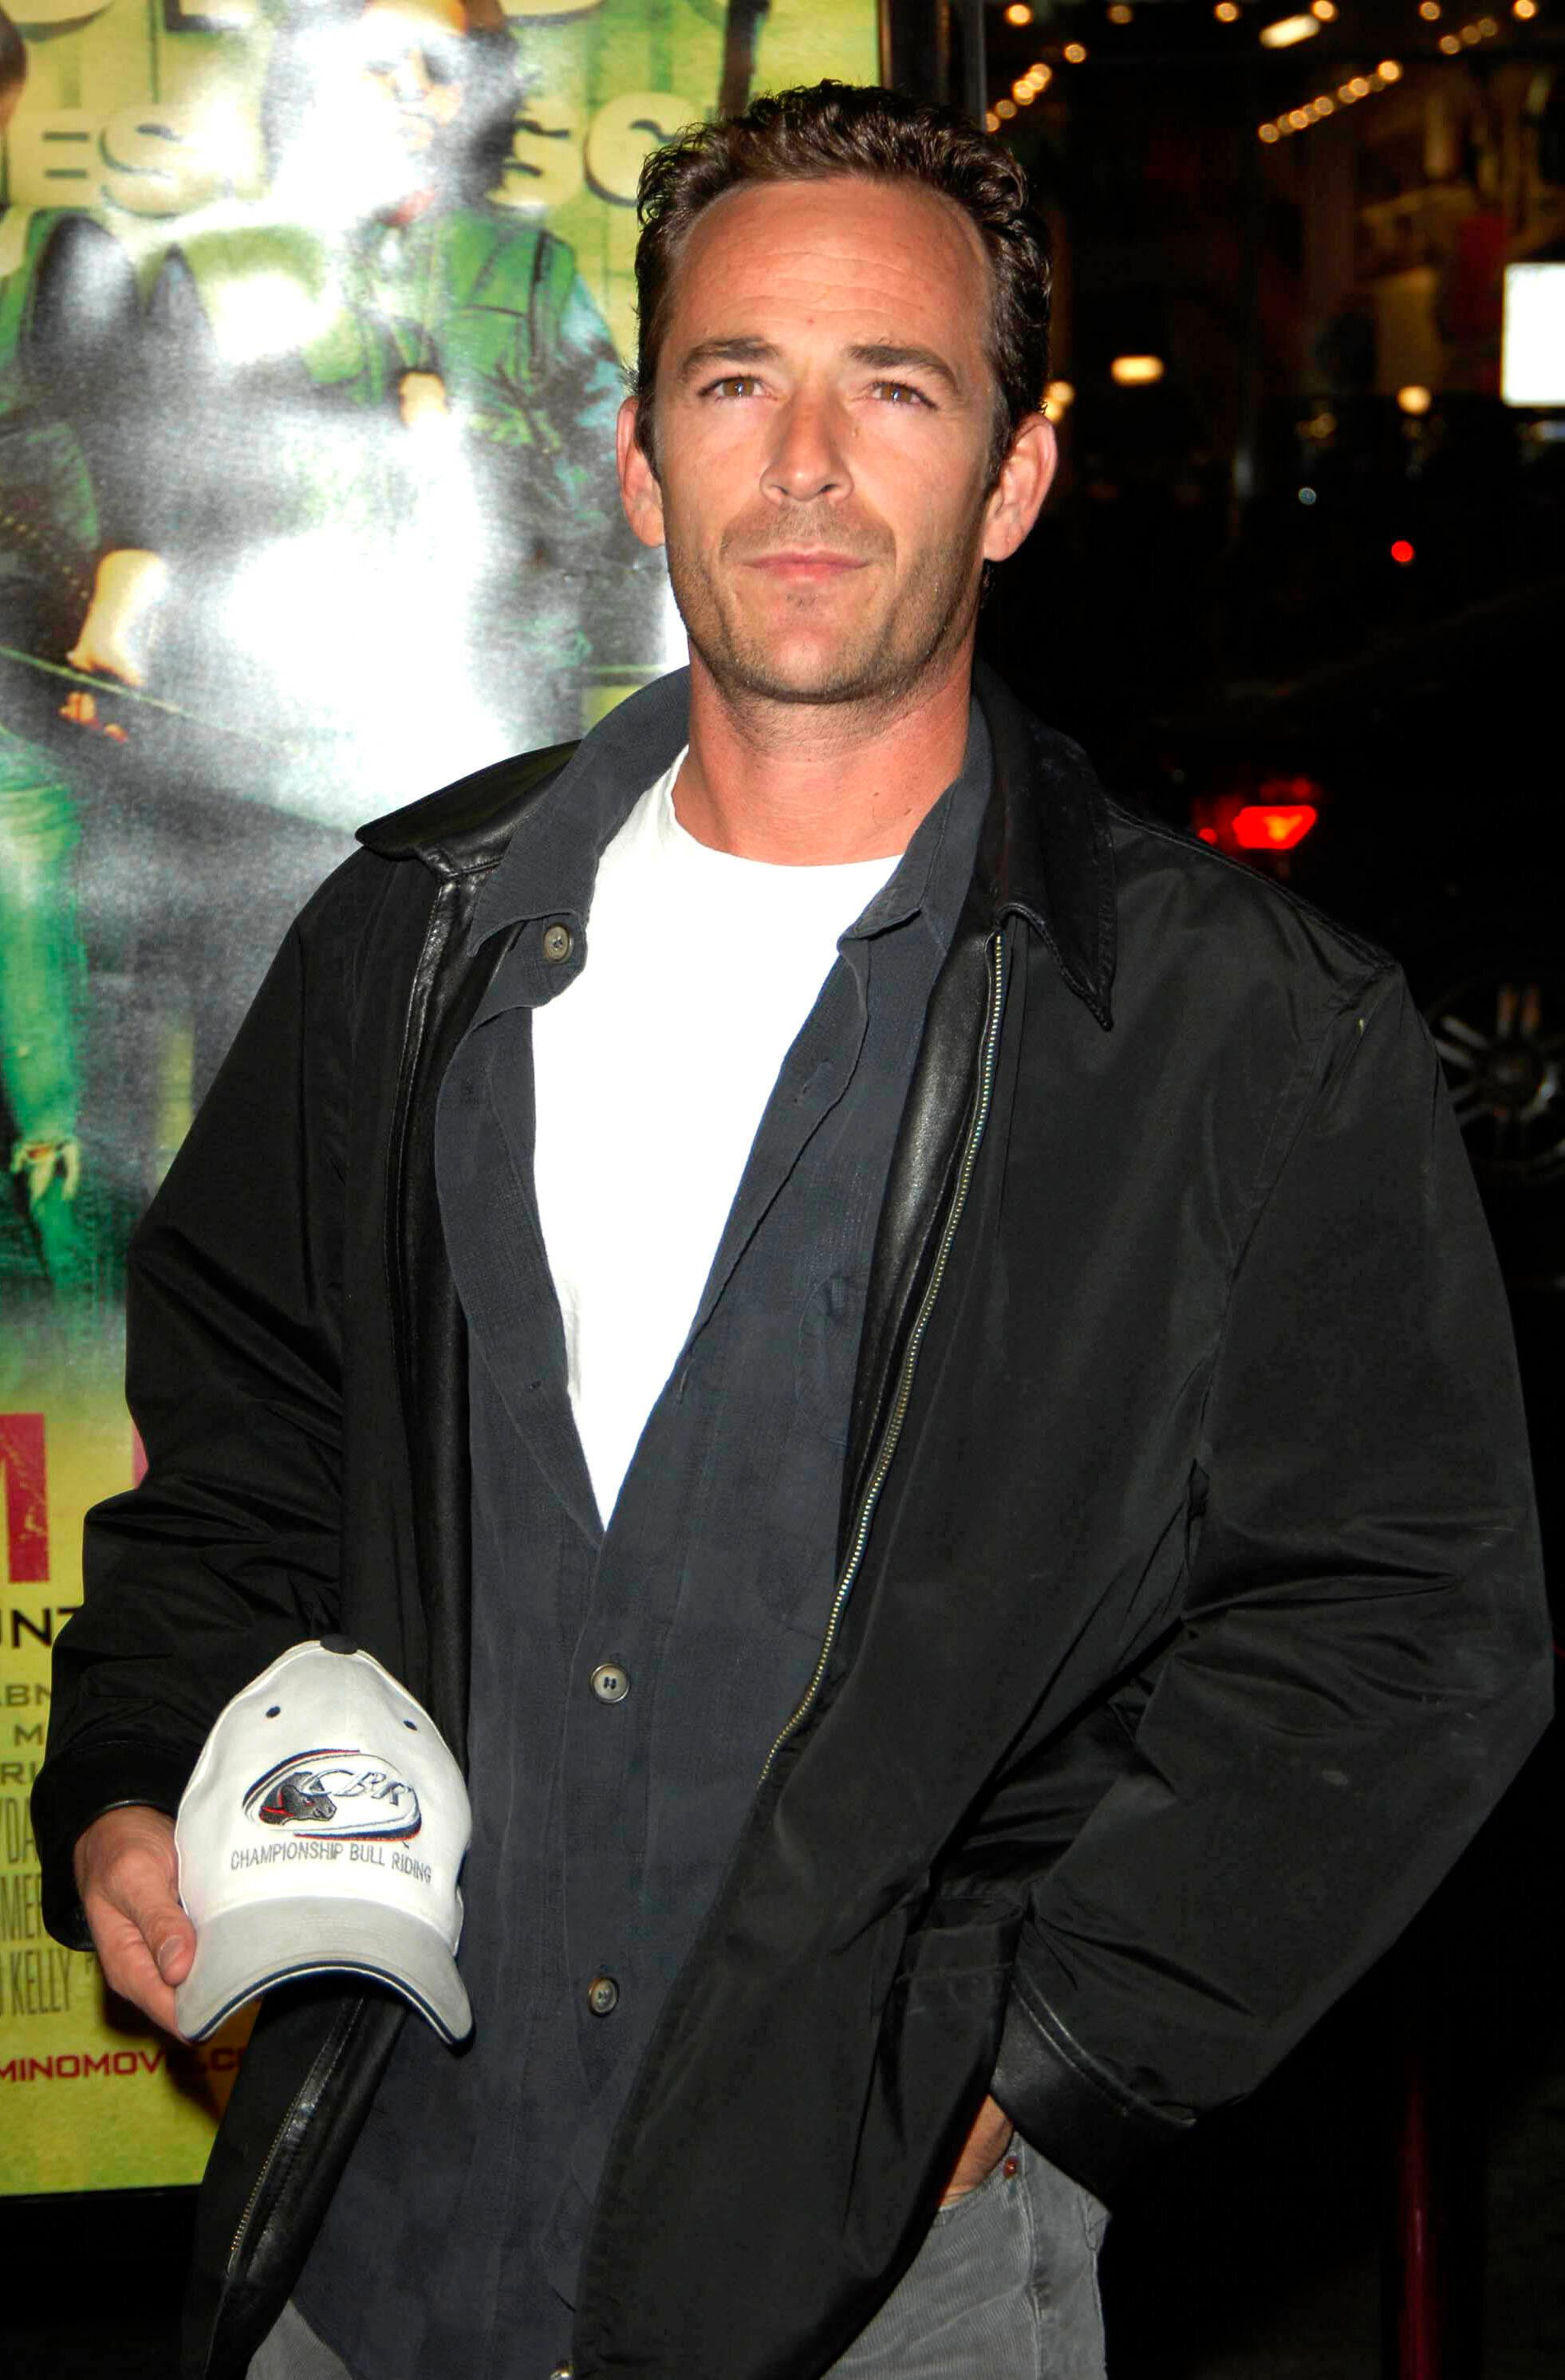 "MARCH 4TH 2019 - Actor Luke Perry has died in Los Angeles, California following a massive stroke suffered Wednesday morning February 27th at his home in Sherman Oaks, California. - File Photo by: Michael Germana/STAR MAX/IPx 2005 10/11/05 Luke Perry at the premiere of ""Domino"". (Los Angeles, CA)"